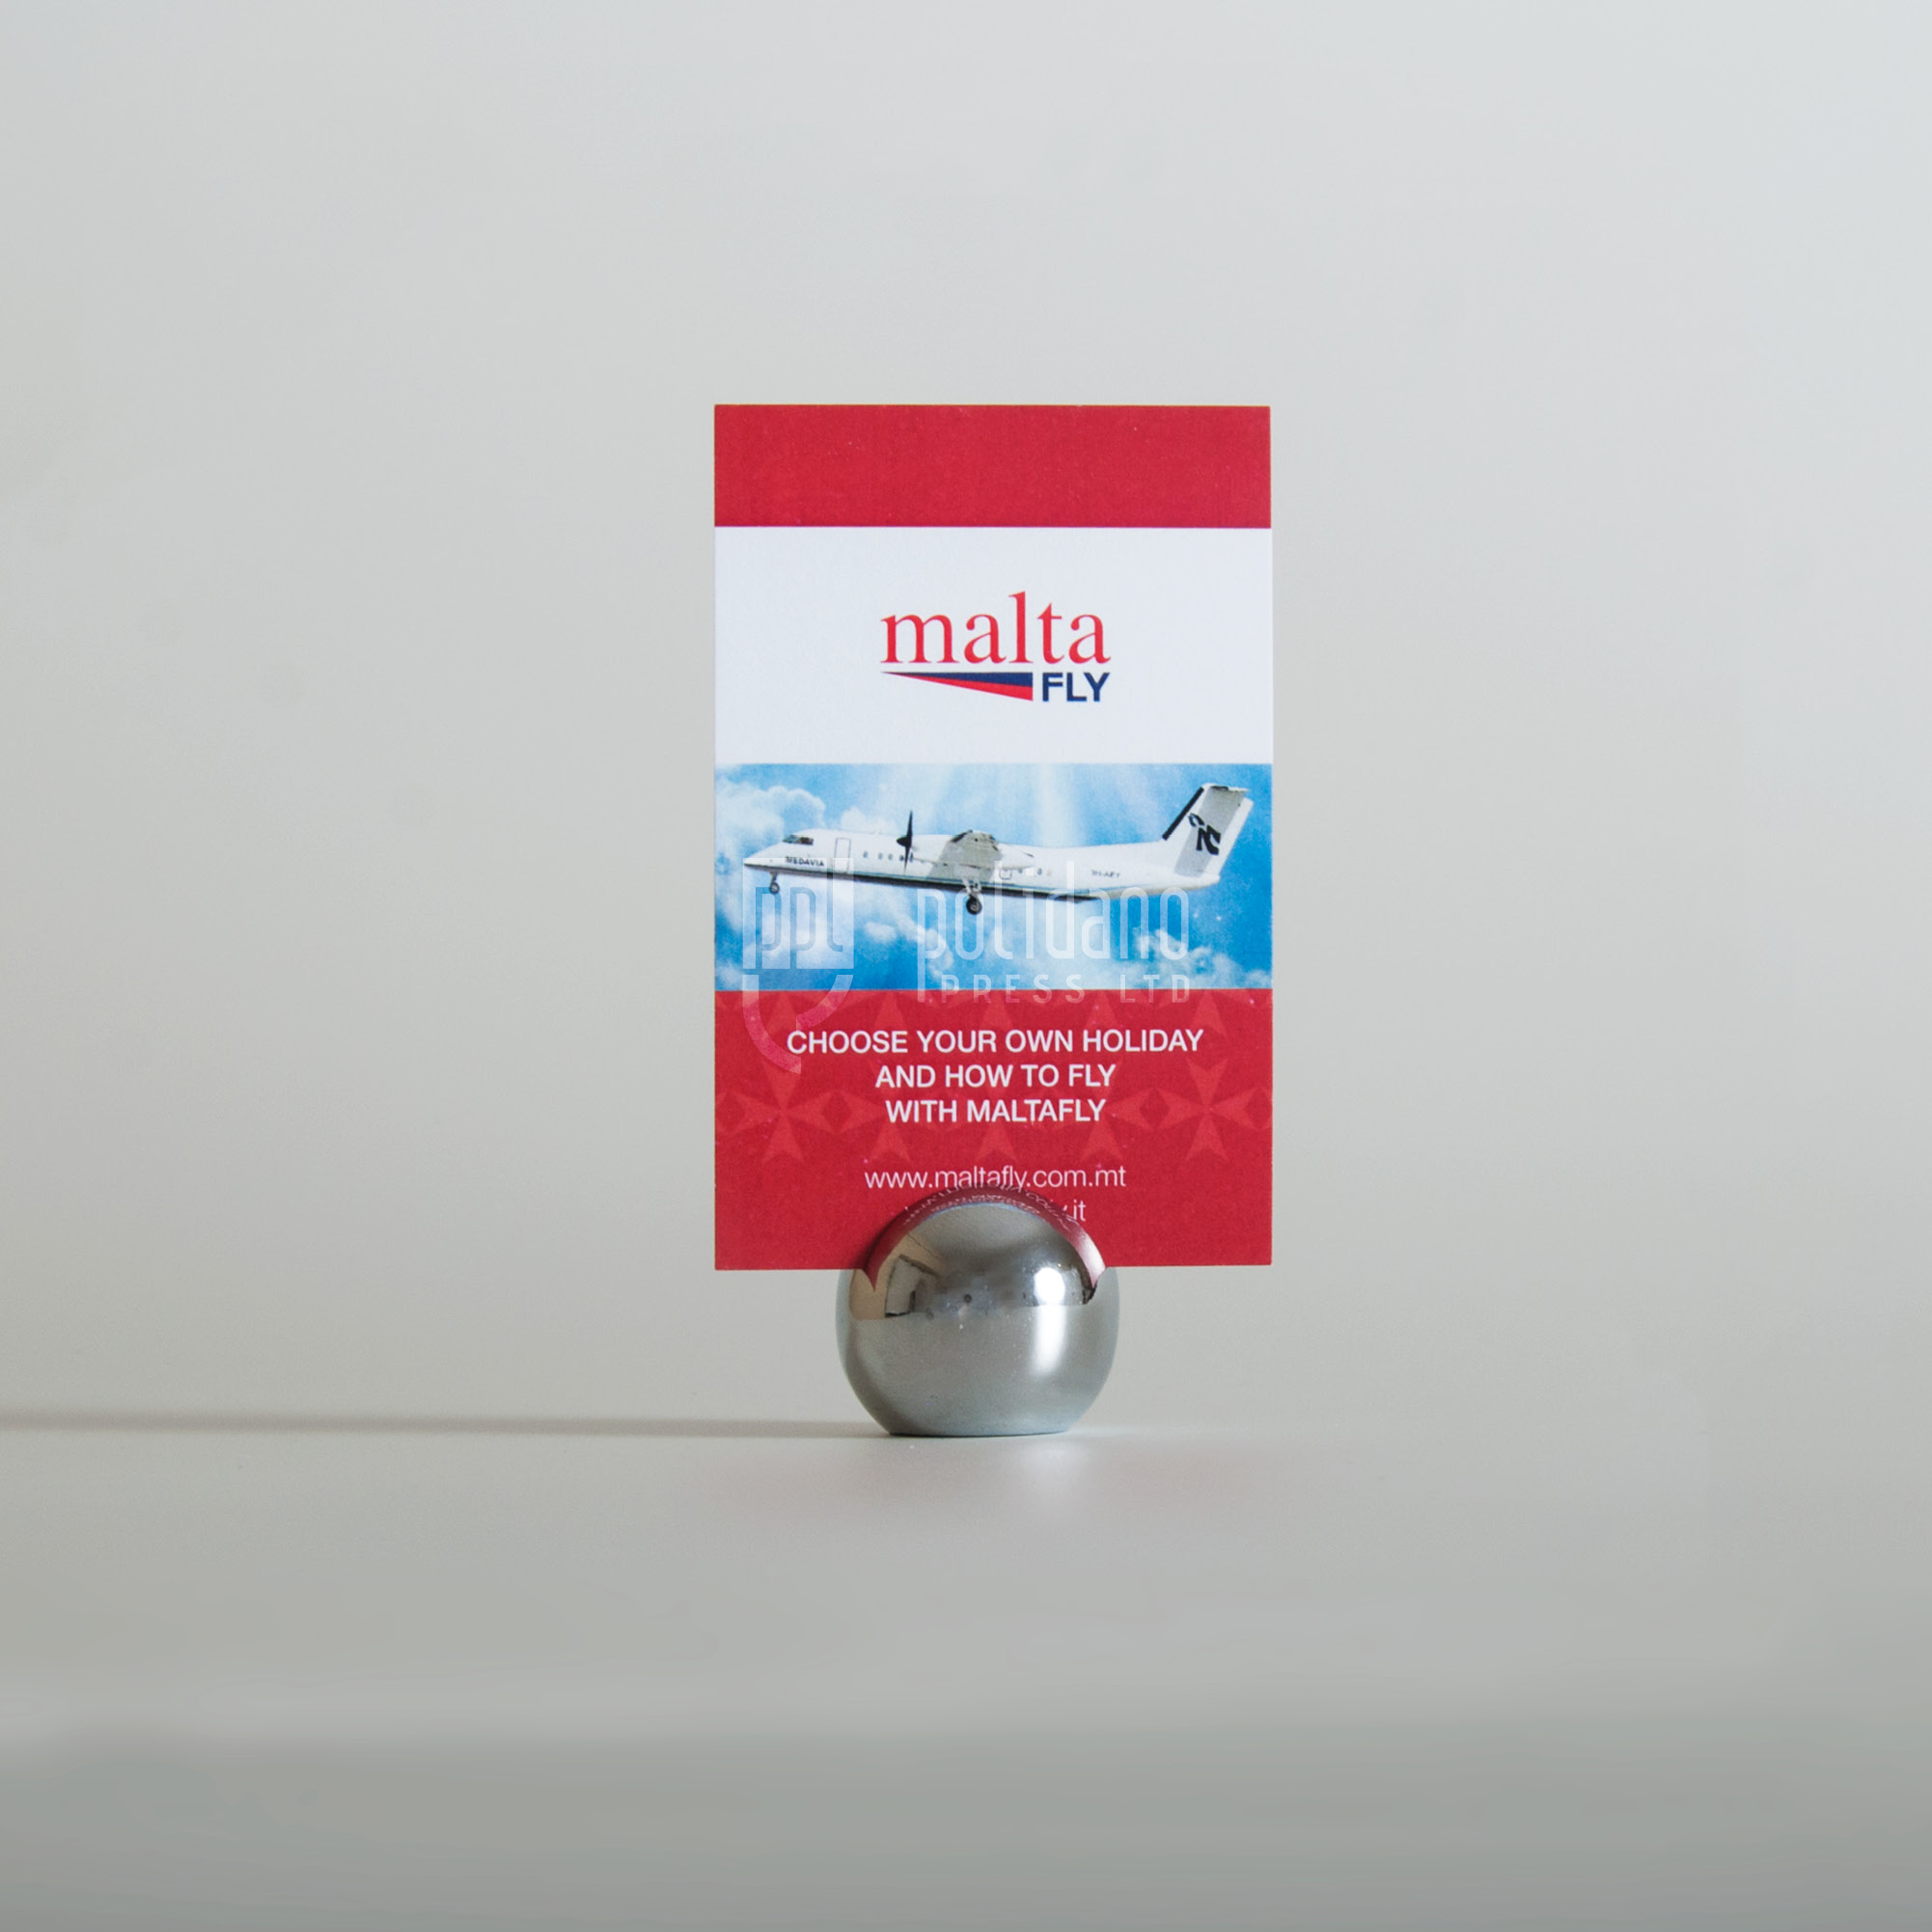 Malta Fly business cards